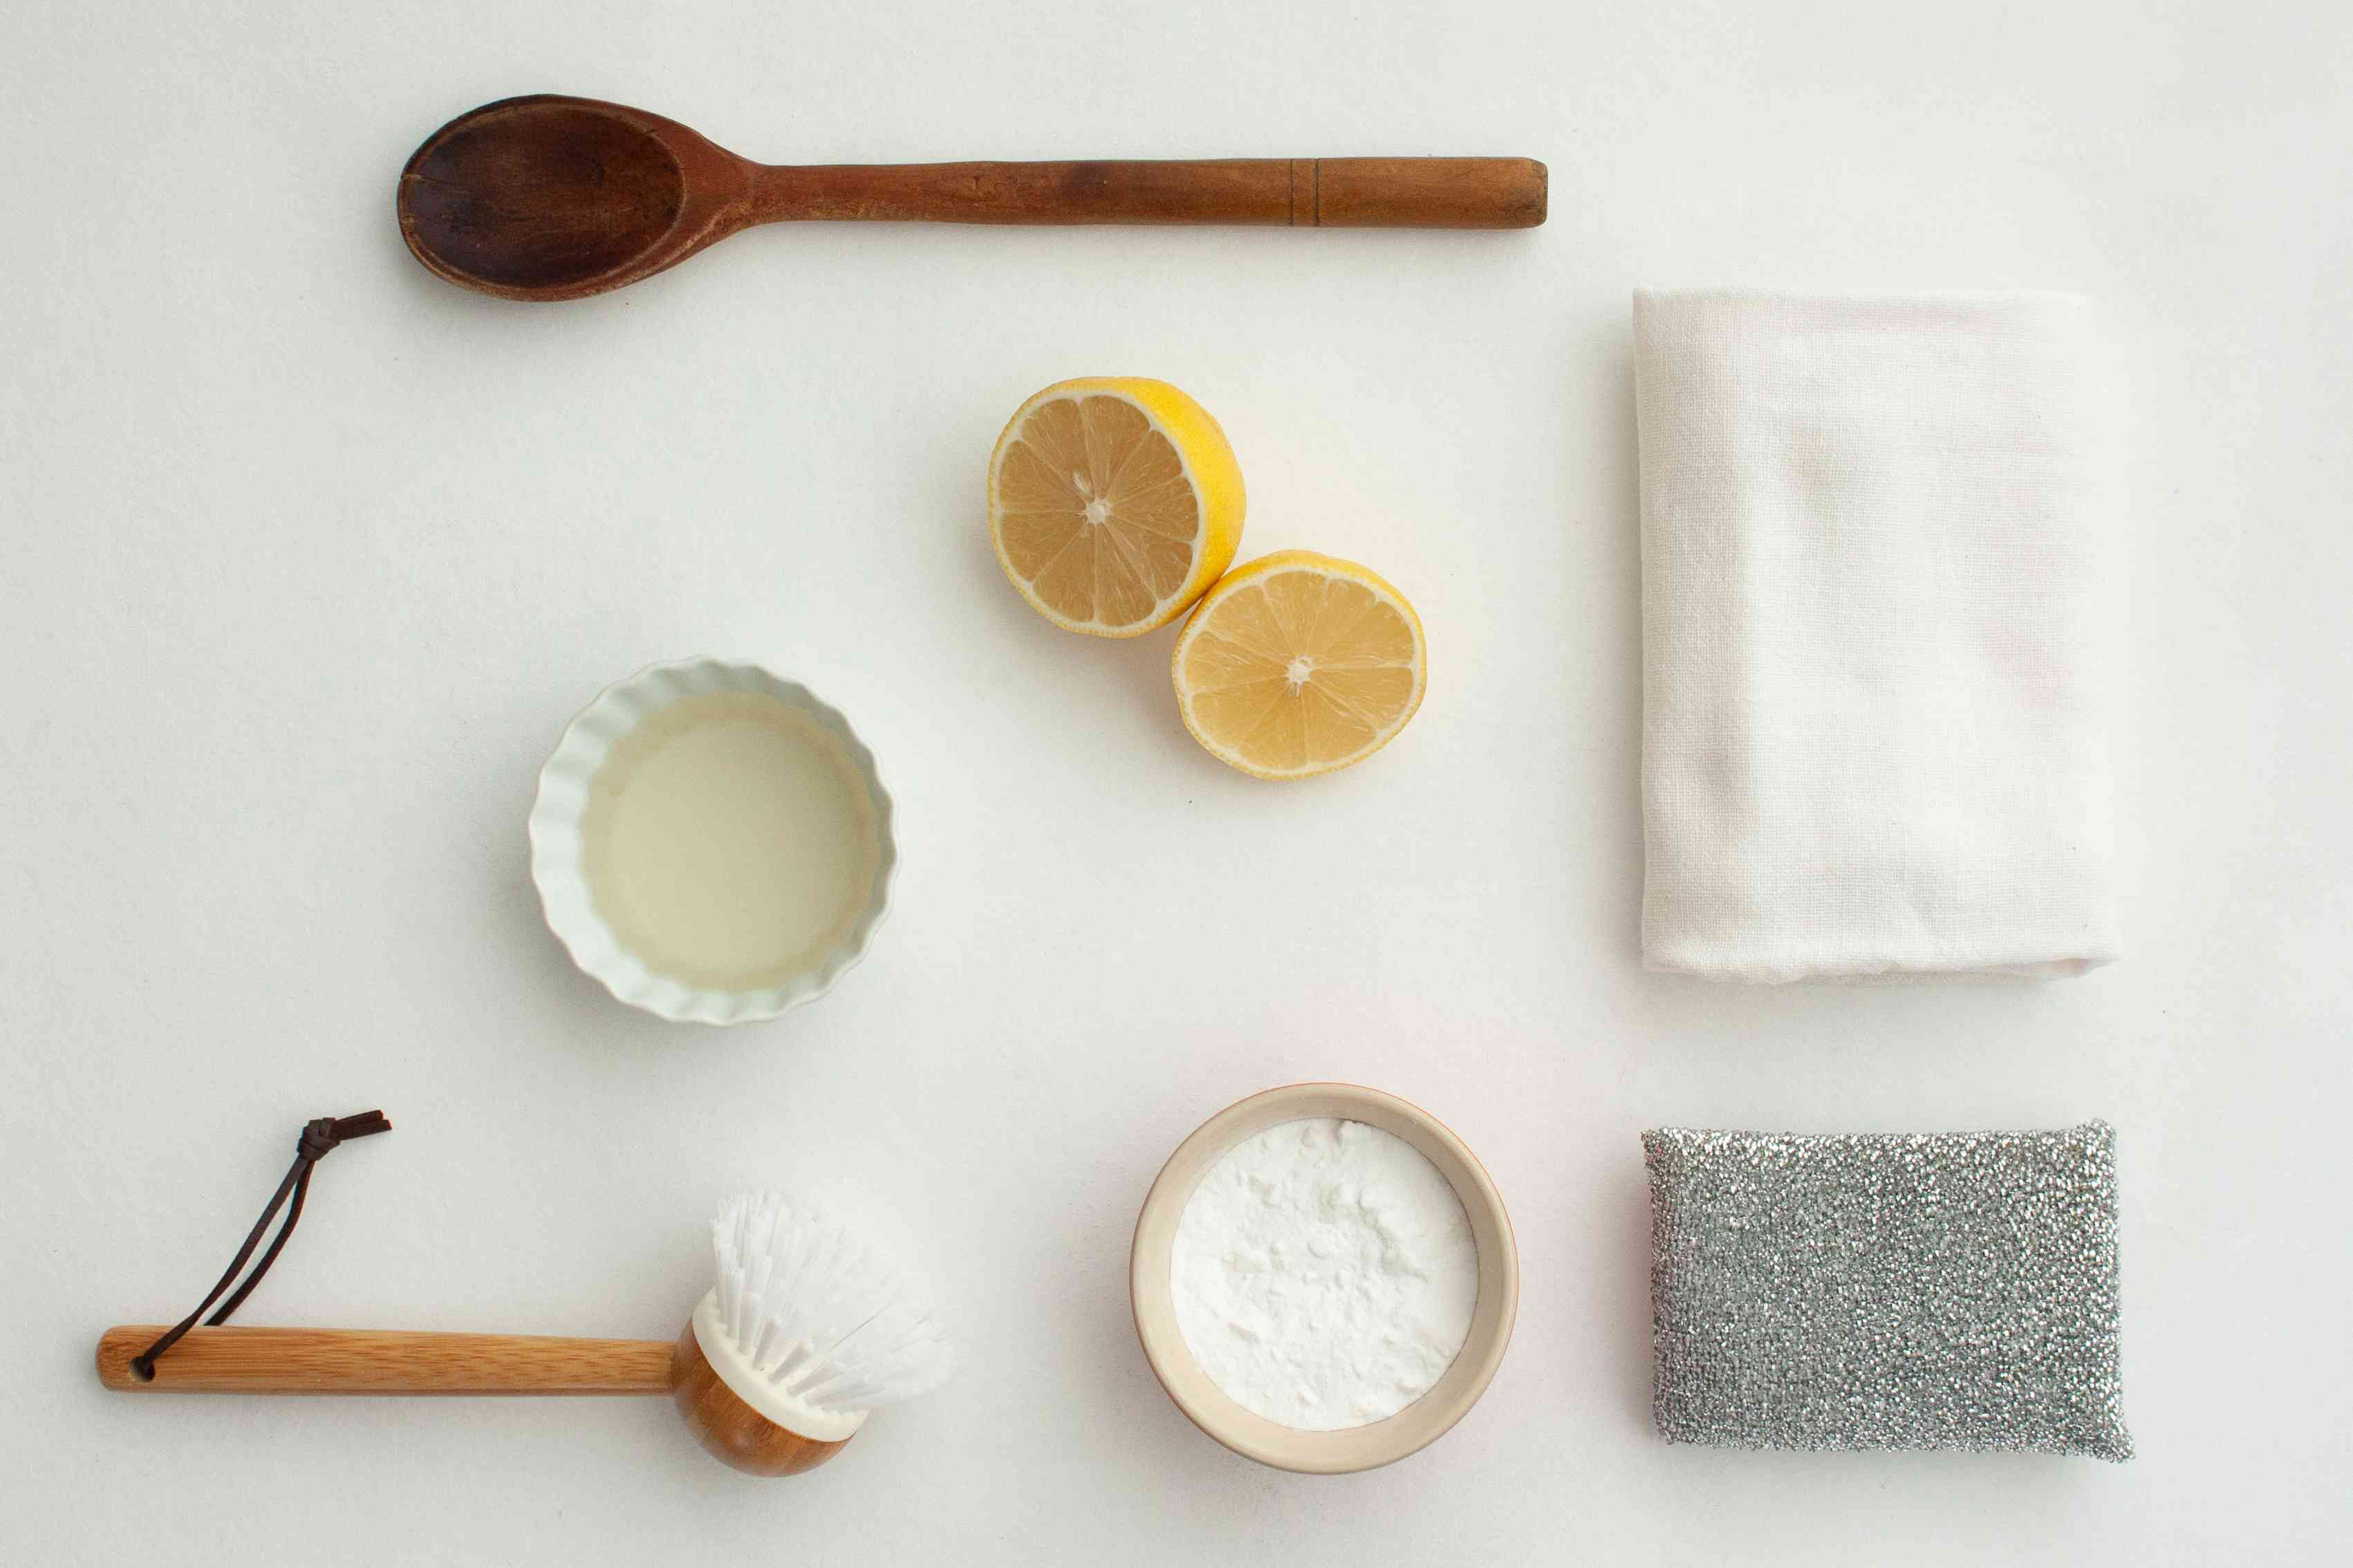 ingredients for cleaning pans